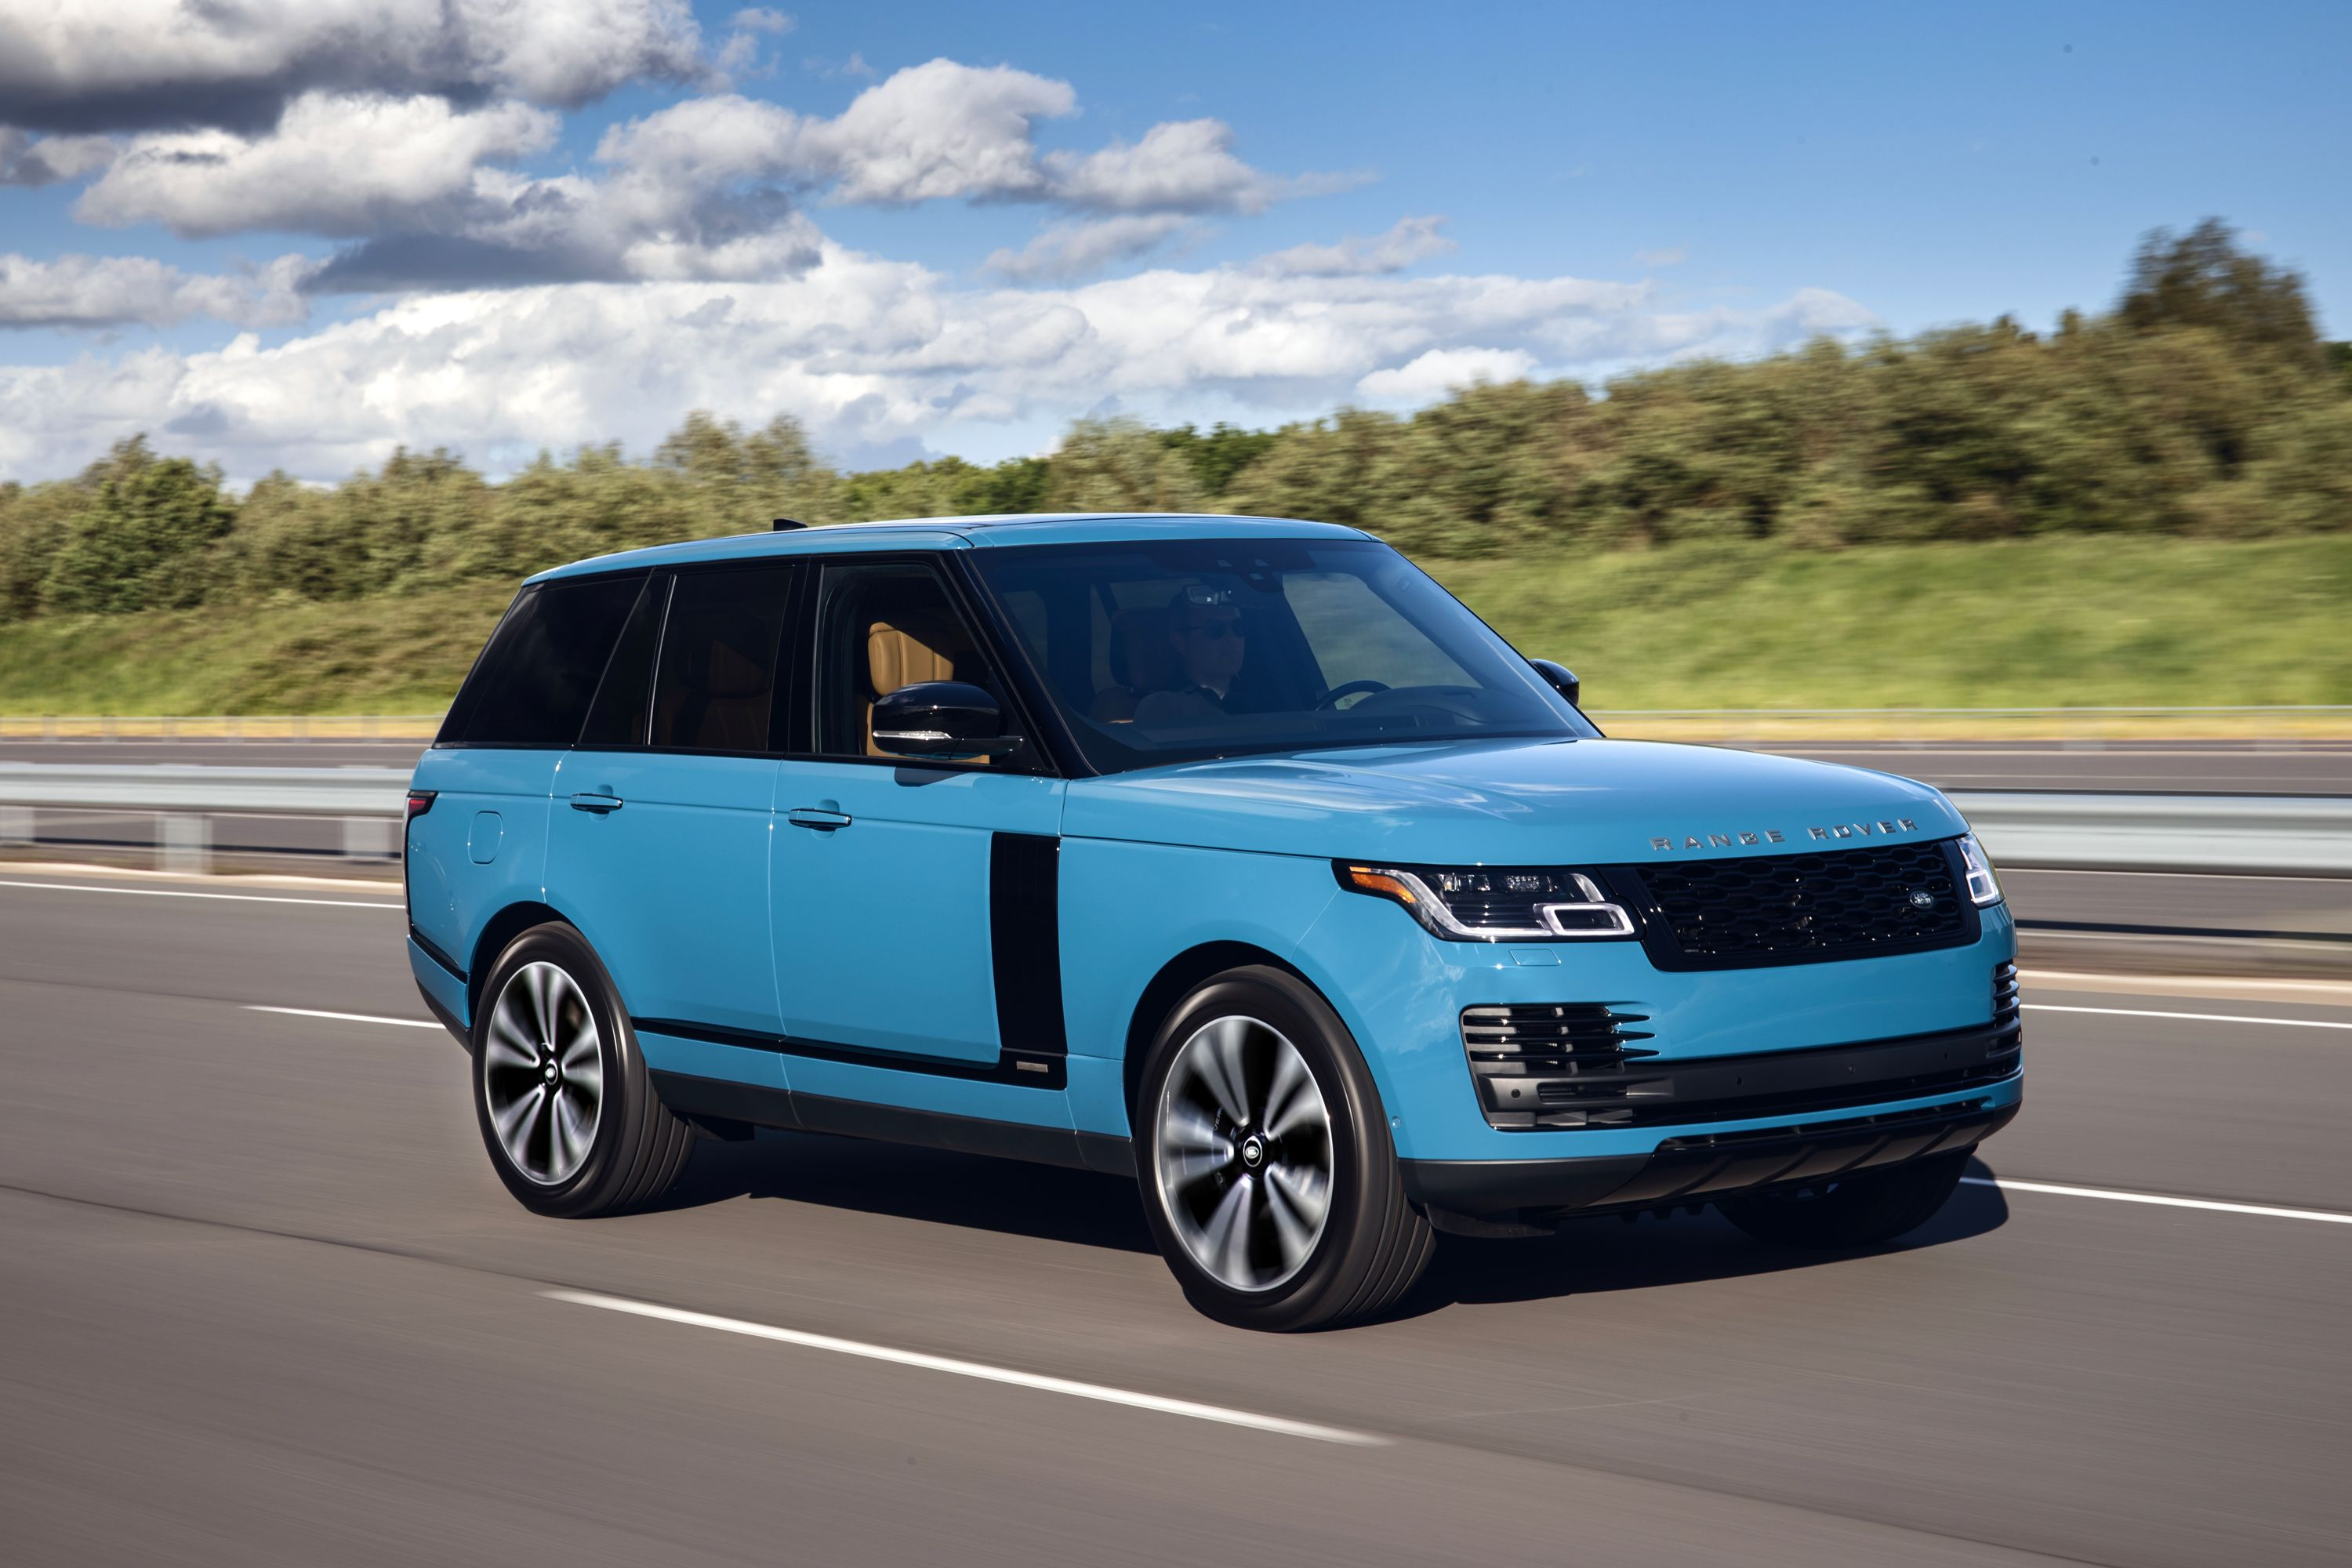 2021 Land Rover Range Rover Review Pricing And Specs